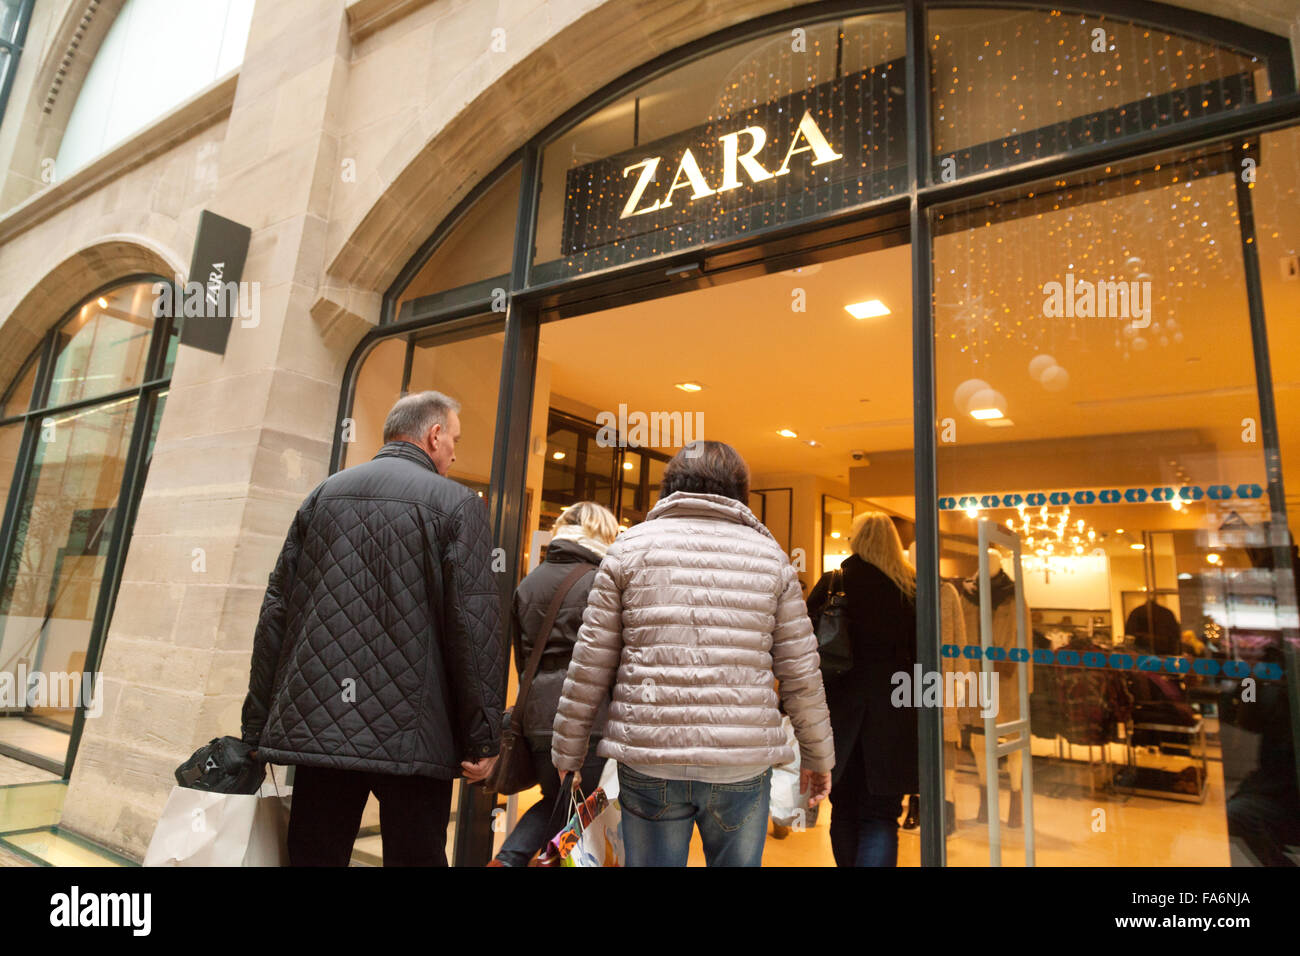 history of the famous fashon store zara marketing essay Zara is one of the world most famous bands in the clothing industry, pioneering by offering fashionable items manufactured quickly at reasonable the chain of fashion stores is the first brand developed in 1975 by the entrepreneur armancio ortega goana, founder of inditex, now one of the.